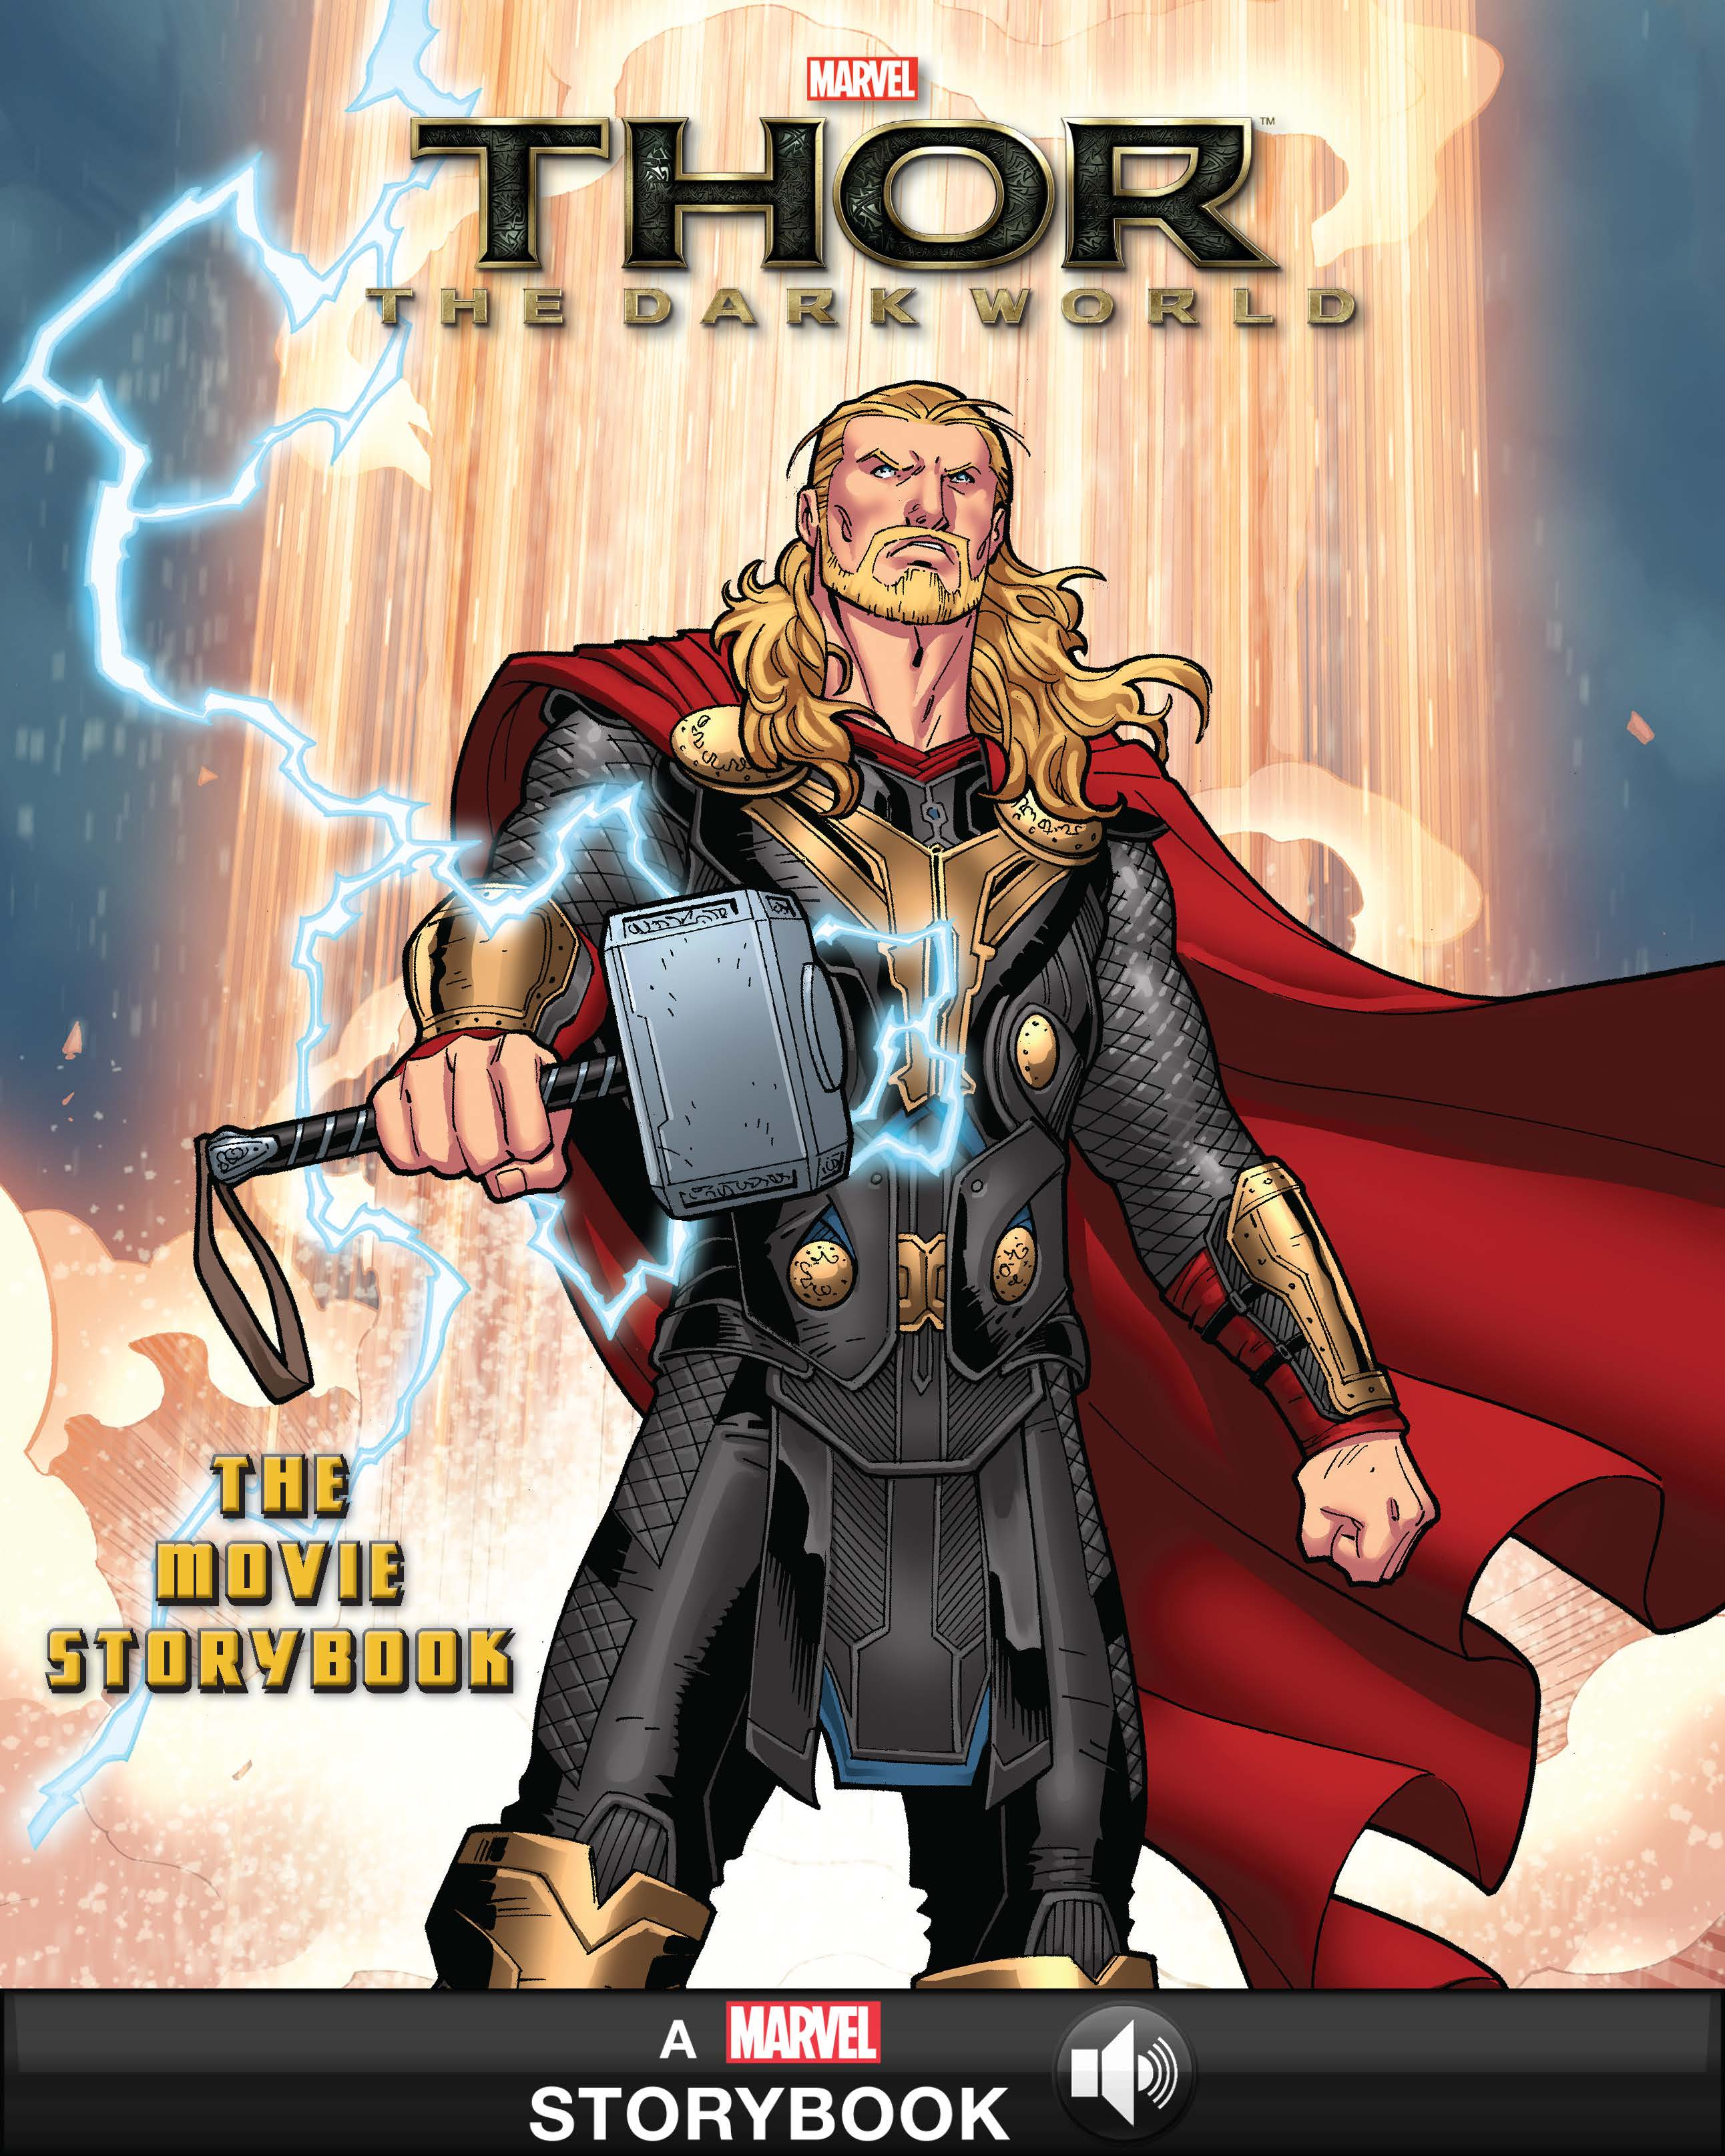 Thor: The Dark World Movie Storybook (with Audio)